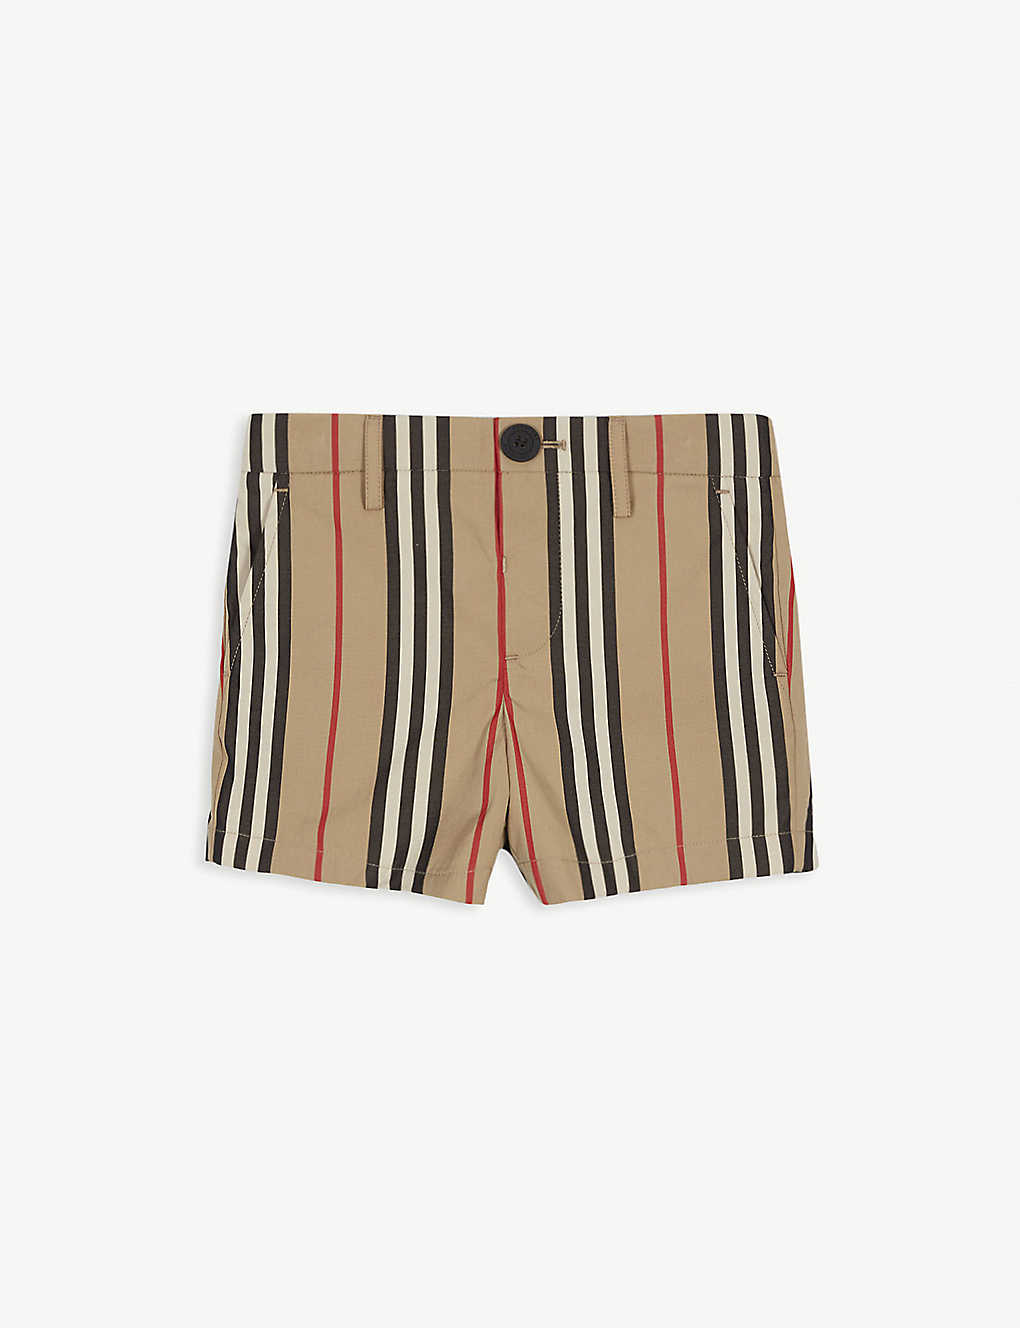 BURBERRY: Striped cotton shorts 3-14 years